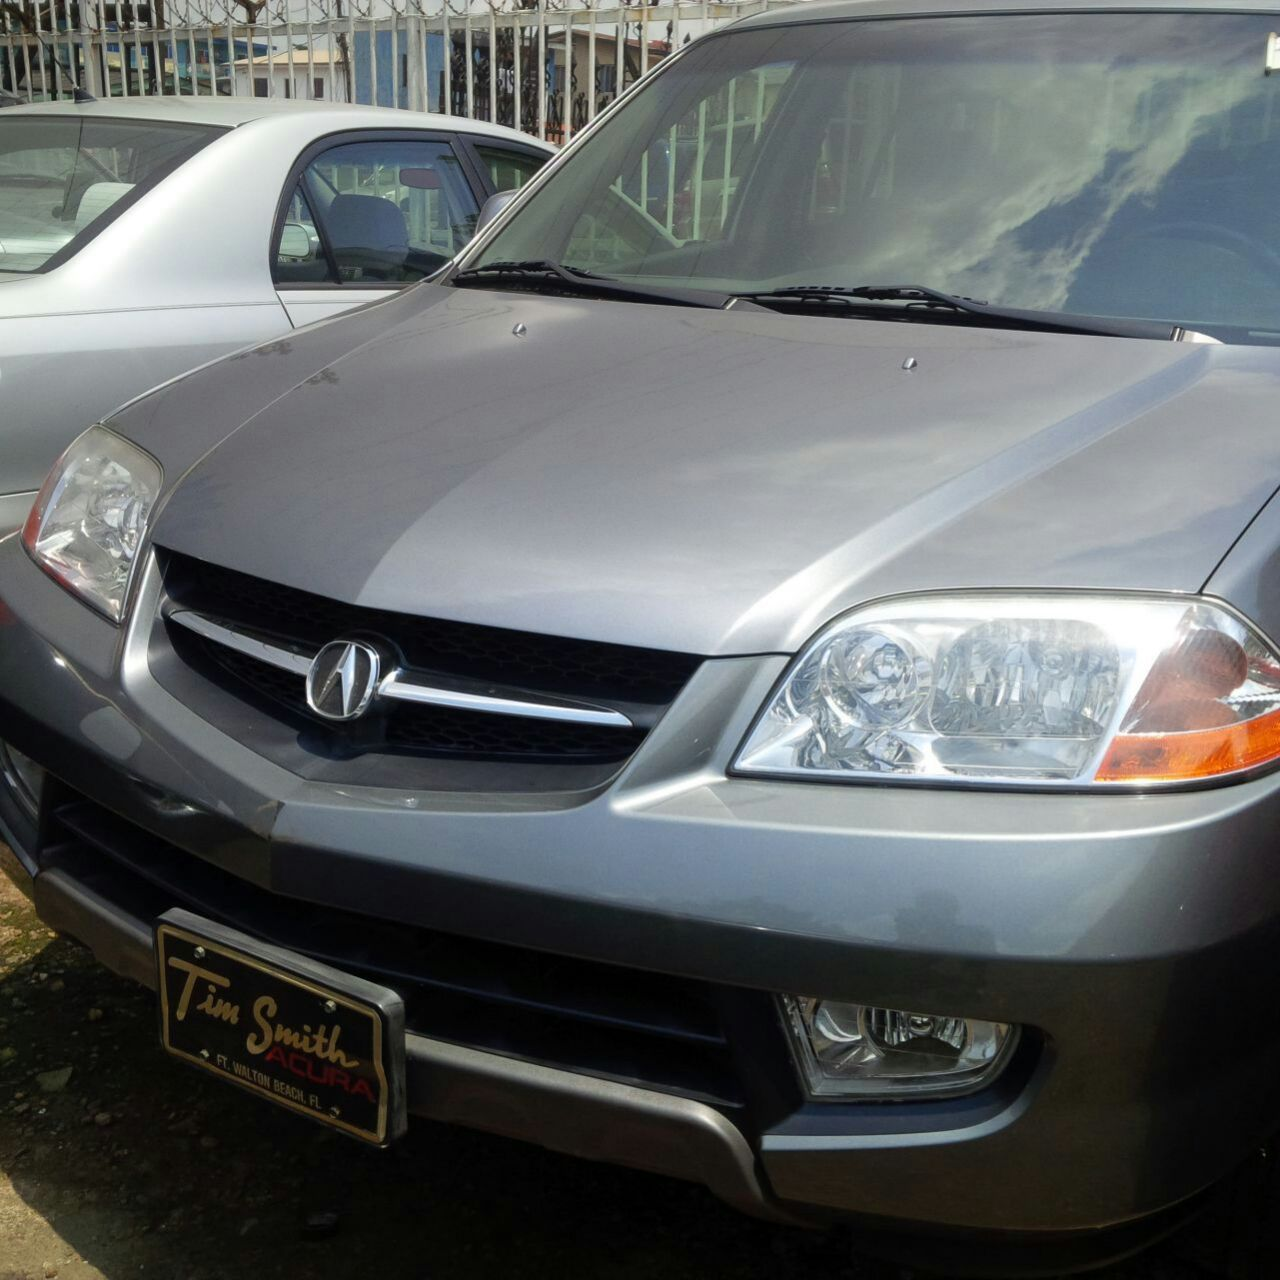 SOLD! 2 Units Tokunbo Acura MDX 2001 & 2004 4WD